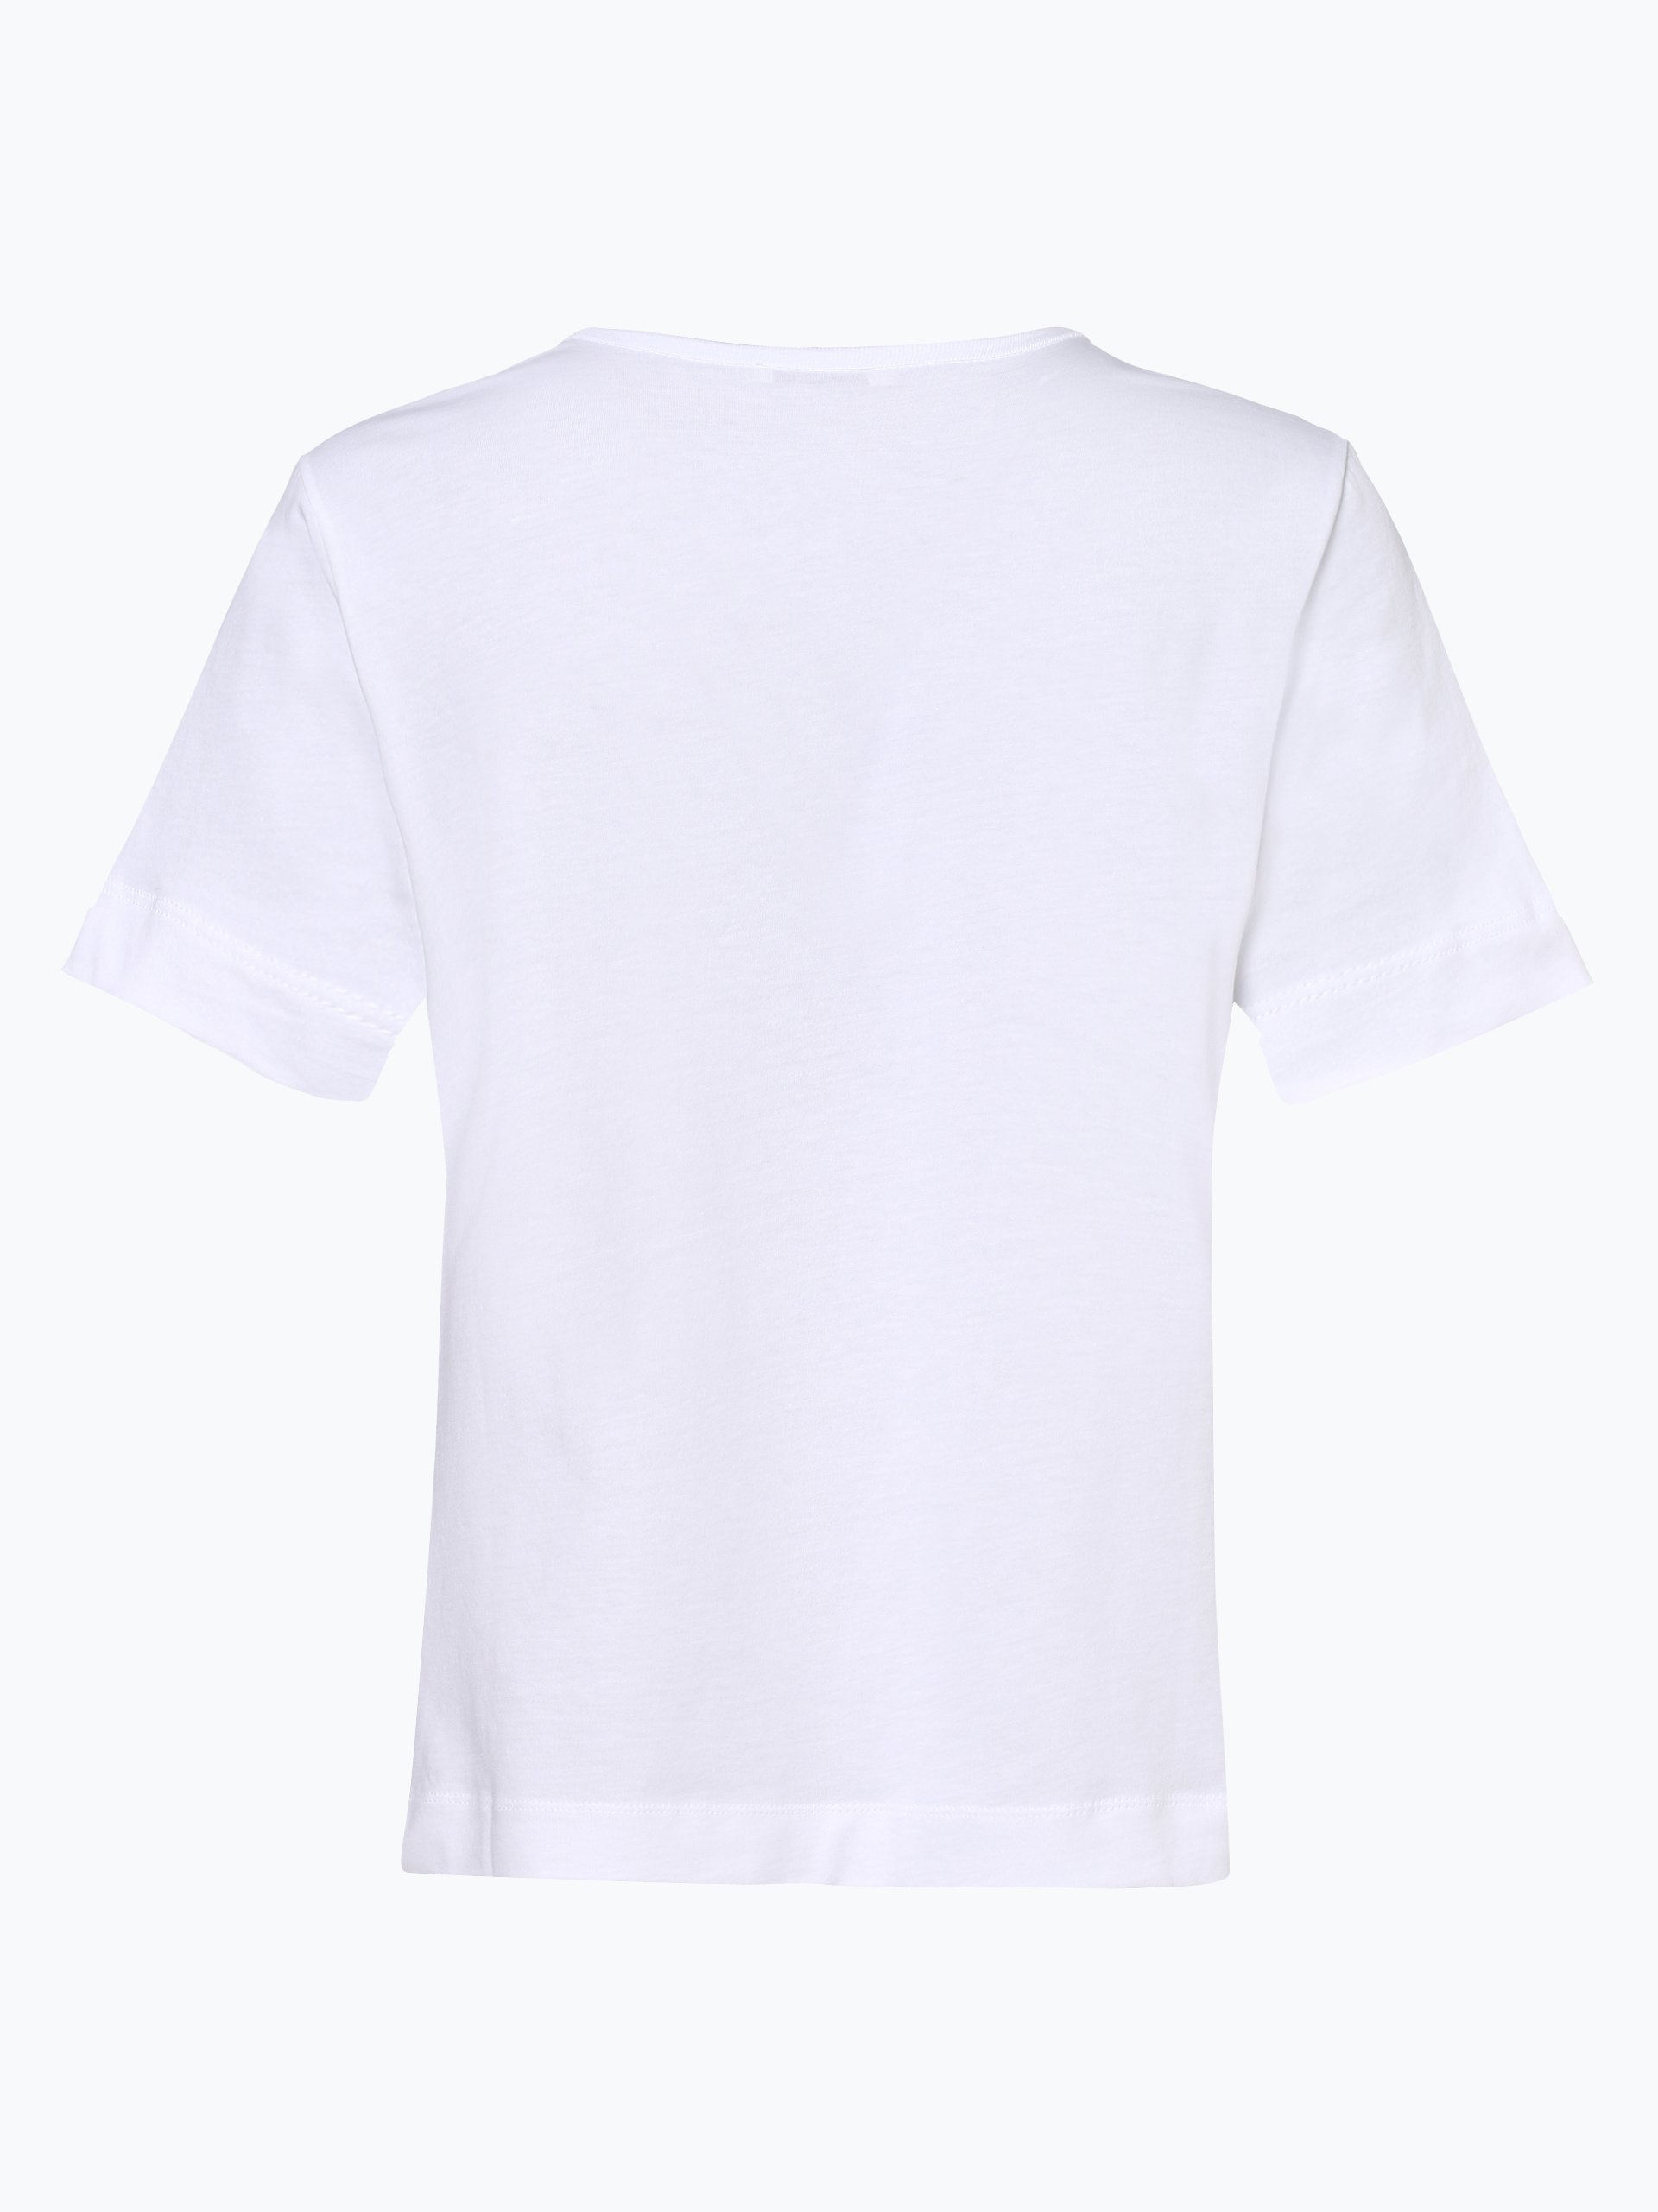 Margittes Damen T-Shirt